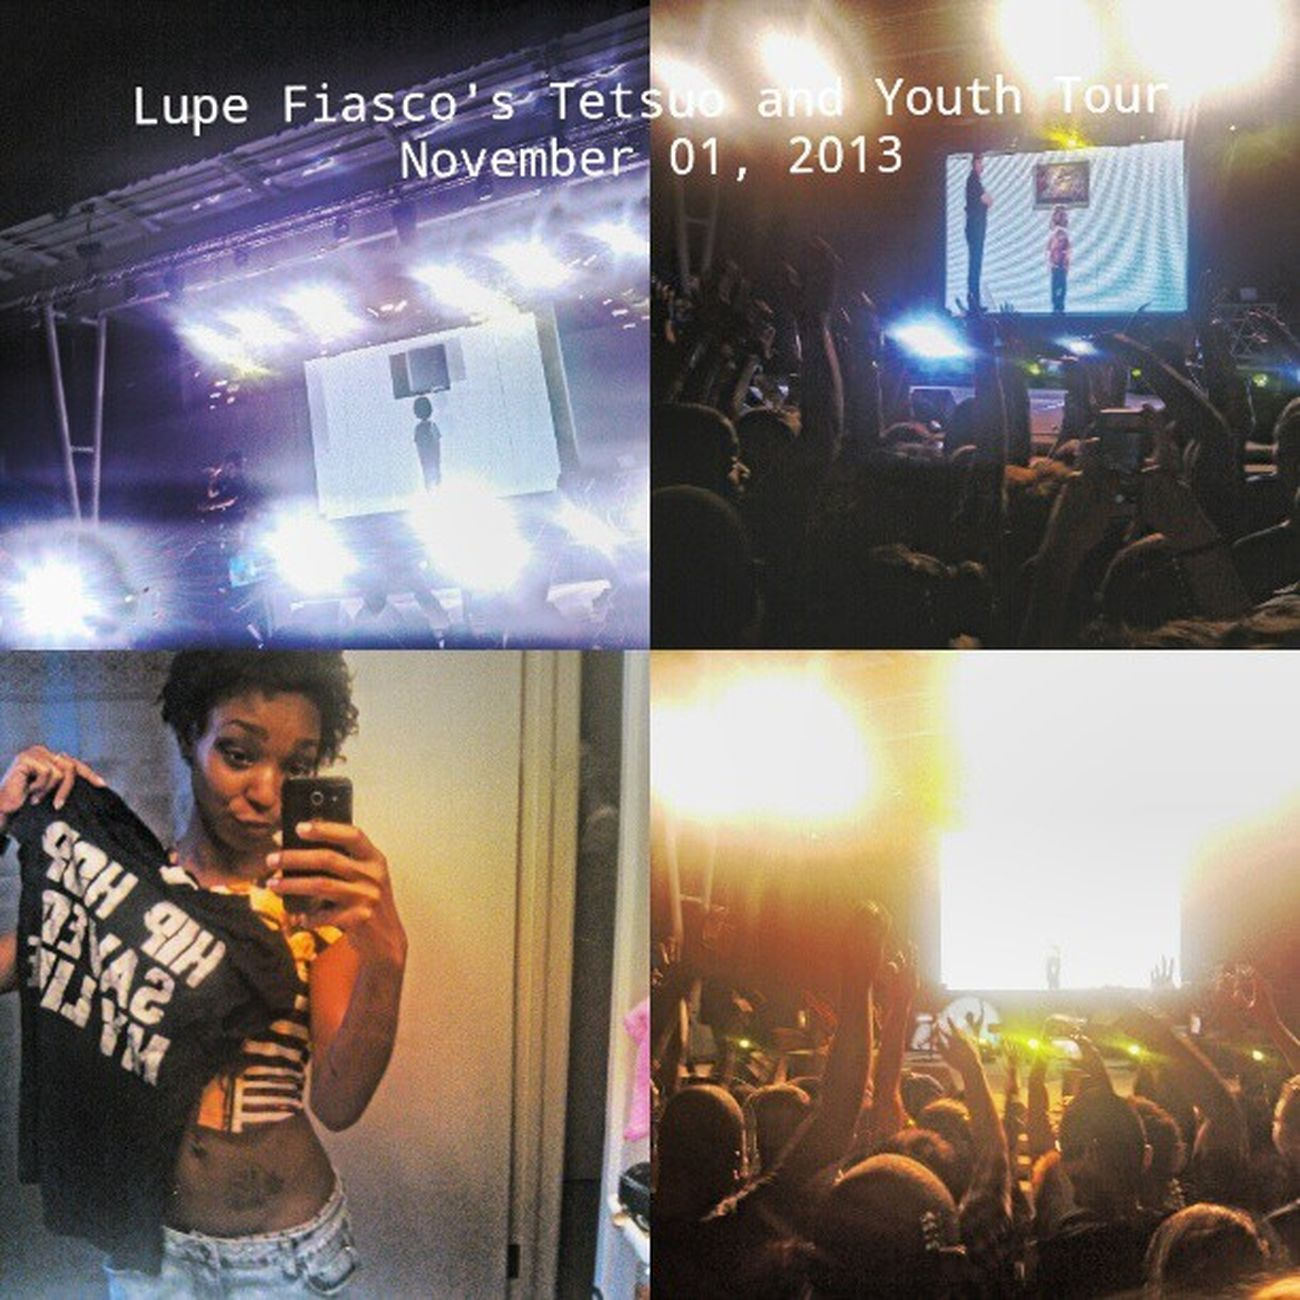 "I don't want to say this is a dream come true, but fuuck. I finally, finally, finally got to see Lupe Fiasco in concert. I feel like I'm past being a Lupe Fiasco fan. I'm not trying to be that dick that boasts about how long they've been listening to a particular artist .. but I've been rockin with this cat since 03, consistently .. I just feel and understand this nigga on so many levels. I remember listening to 'Hurt Me Soul' and 'HipHop Saved My Life' for the first times and deciding to have a personal relationship with music. Being able to rap every single word of 'Kick,Push' with Lupe was so awesome and amazing cause I just listen to that song on the regular degular so hearing and seeing it performed was unforgettable. If you were there .. there was a point where the whole audience was chanting ""hip hip, saved my life"", and it has, again and again. Everything just meant so much to me. If you were there, I was the one yelling ""I love you Lupe"", ""Do Kick Push"", and ""Freestyle! Freestyle!"" haha Fnf Lupefiasco Tetsuoandyouth Justthefreedom wasbetterthanbreathin"